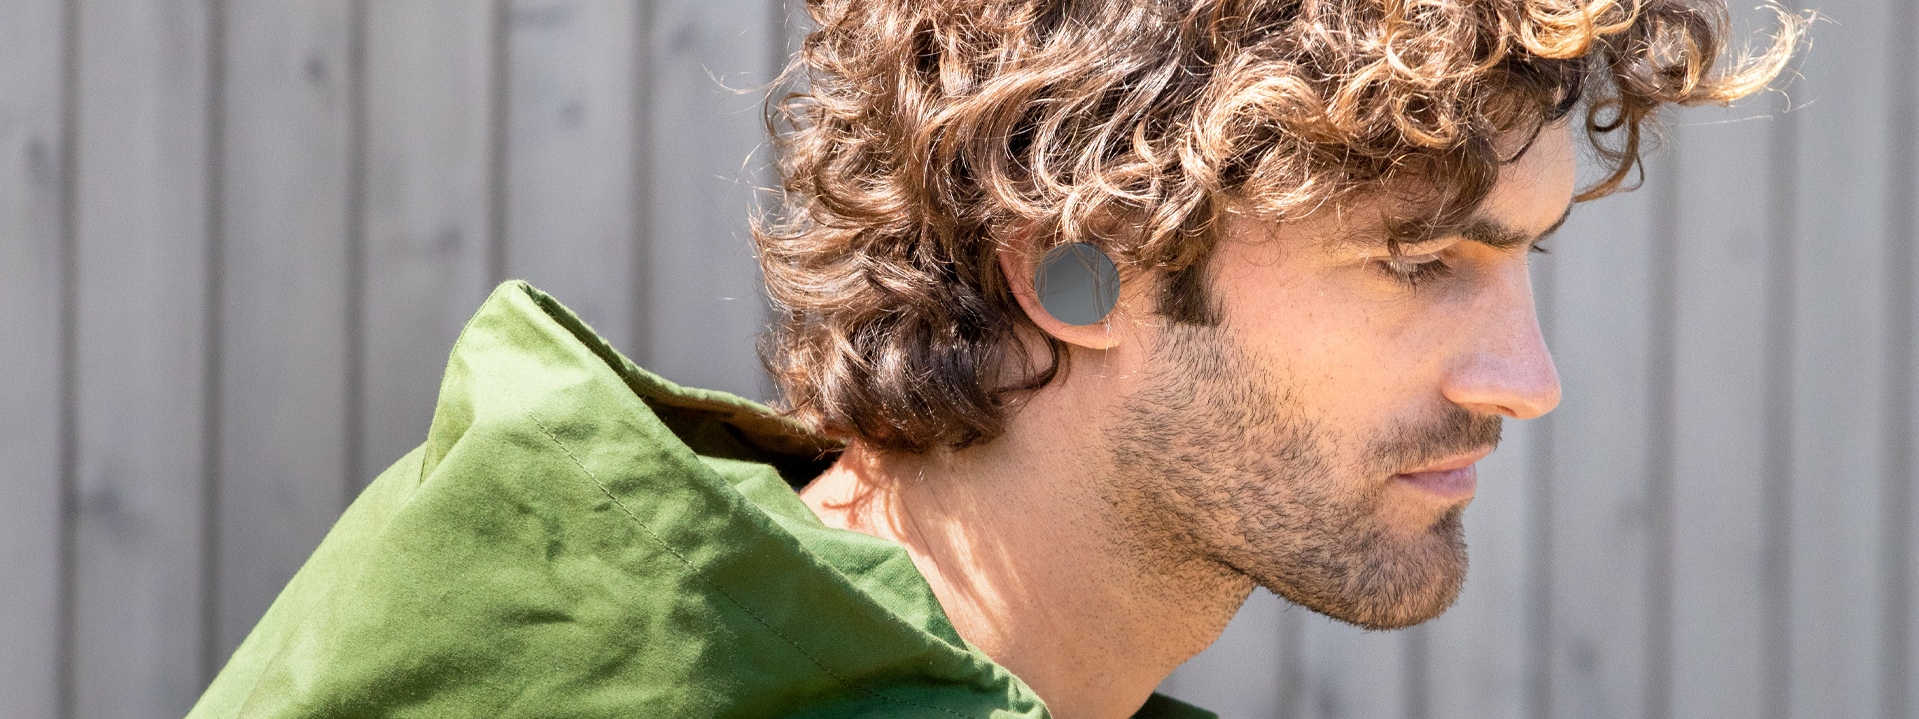 A person with Surface Earbuds